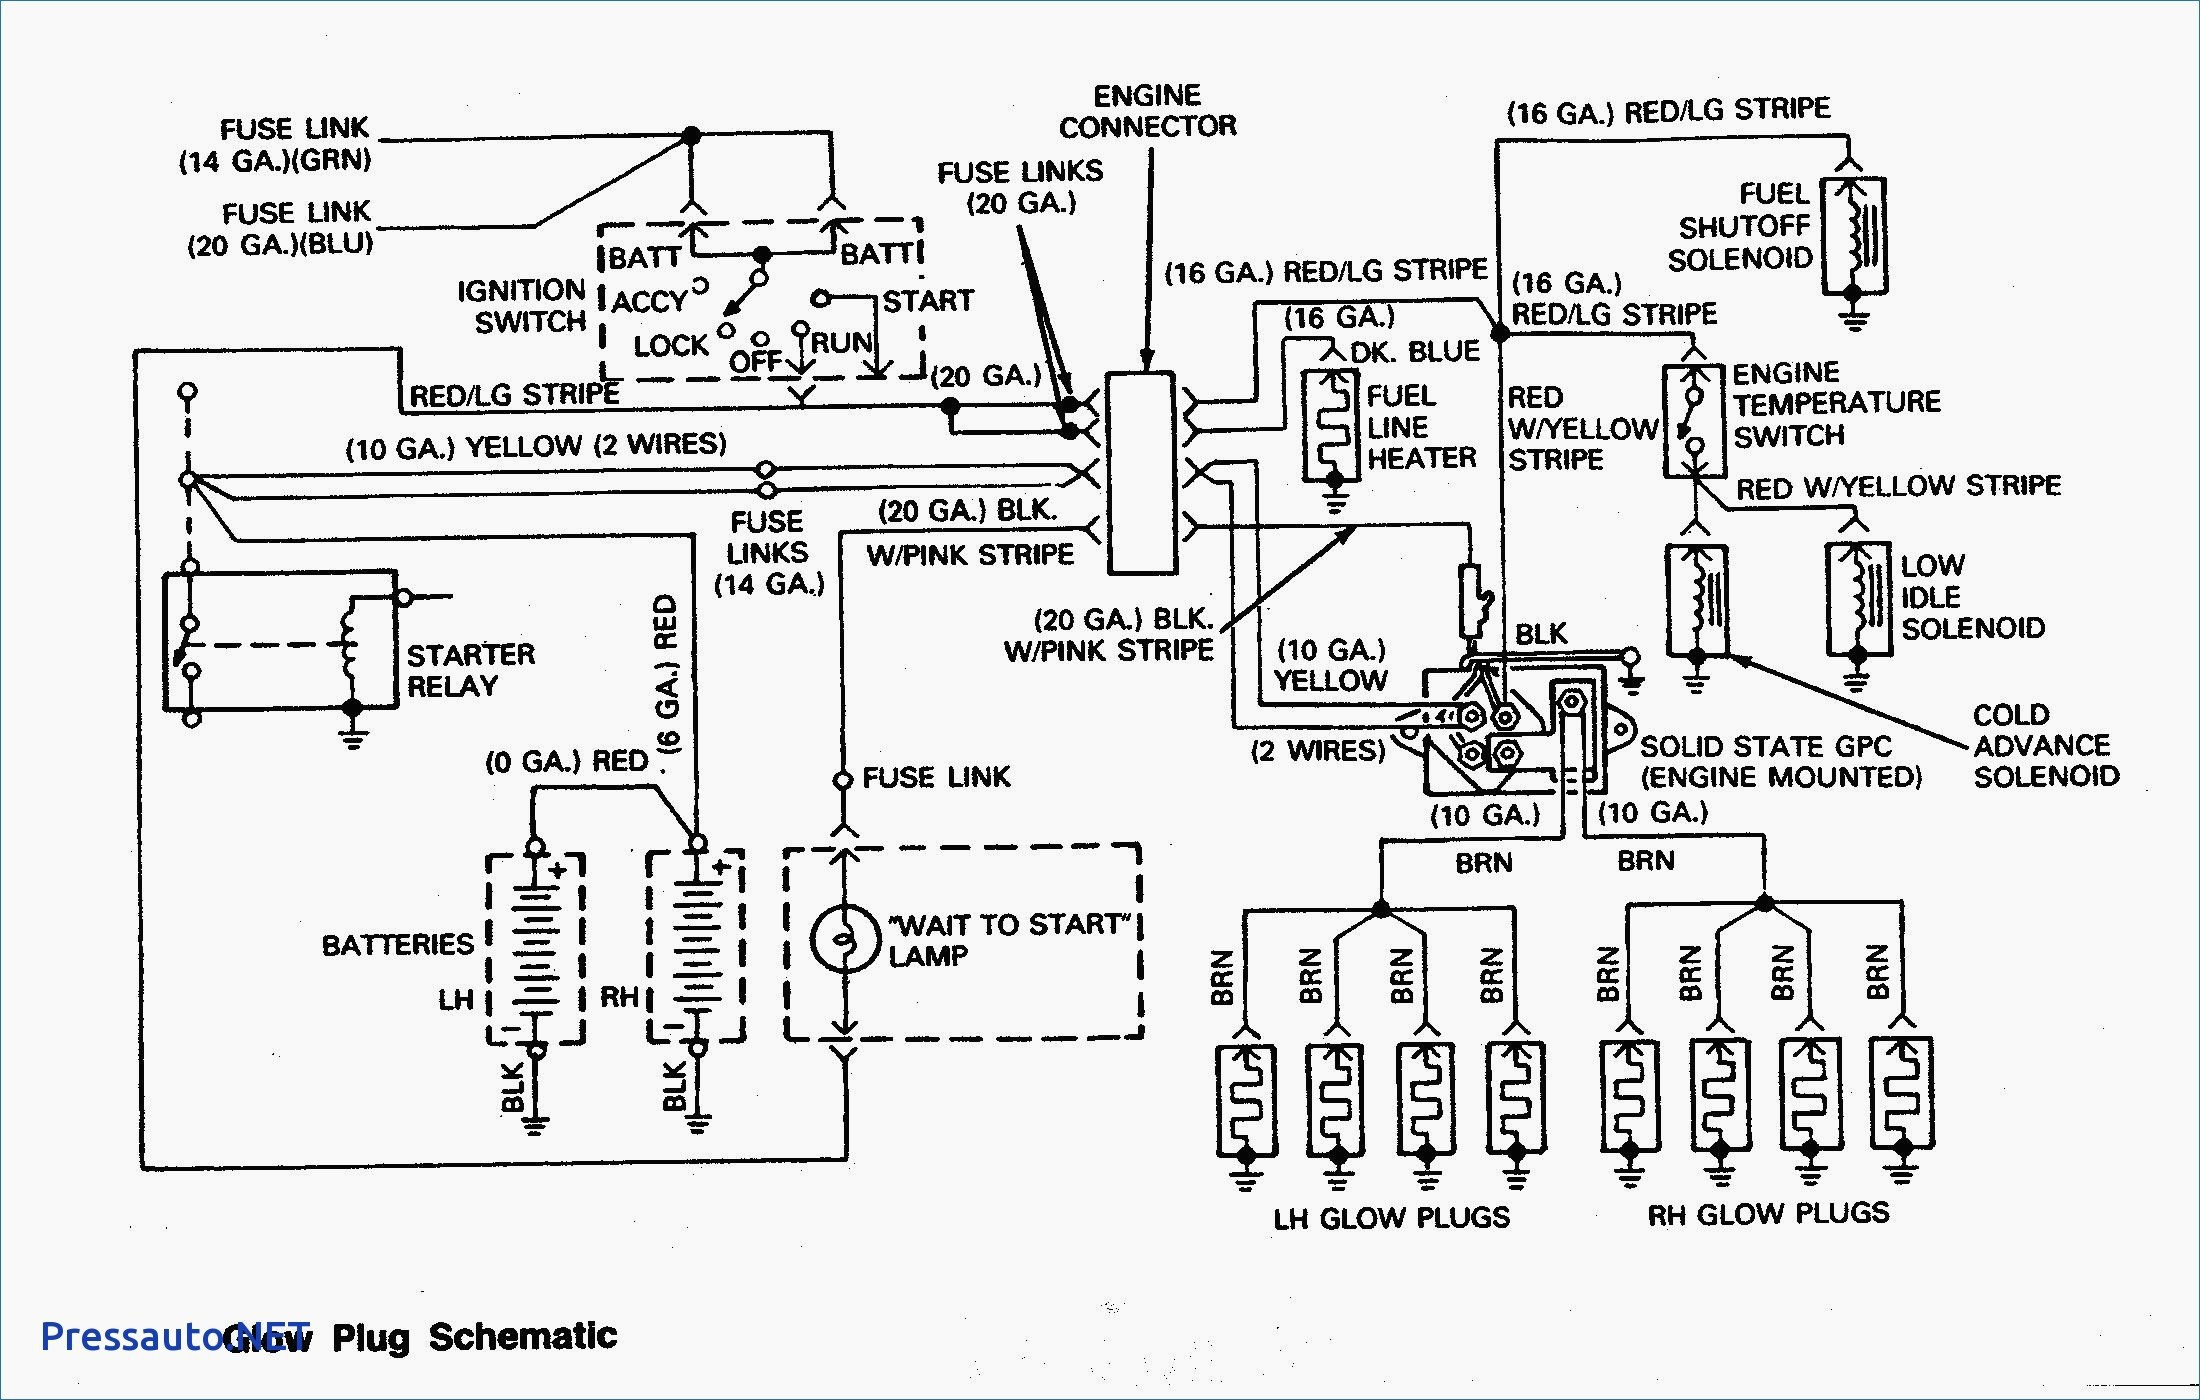 lly duramax injector wiring diagram electrical wiring diagram house \u2022 fuel injector holder 2005 duramax injector wiring diagram in depth wiring diagrams u2022 rh heyhan co 2005 gmc duramax injectors 6 6 duramax injector replacement